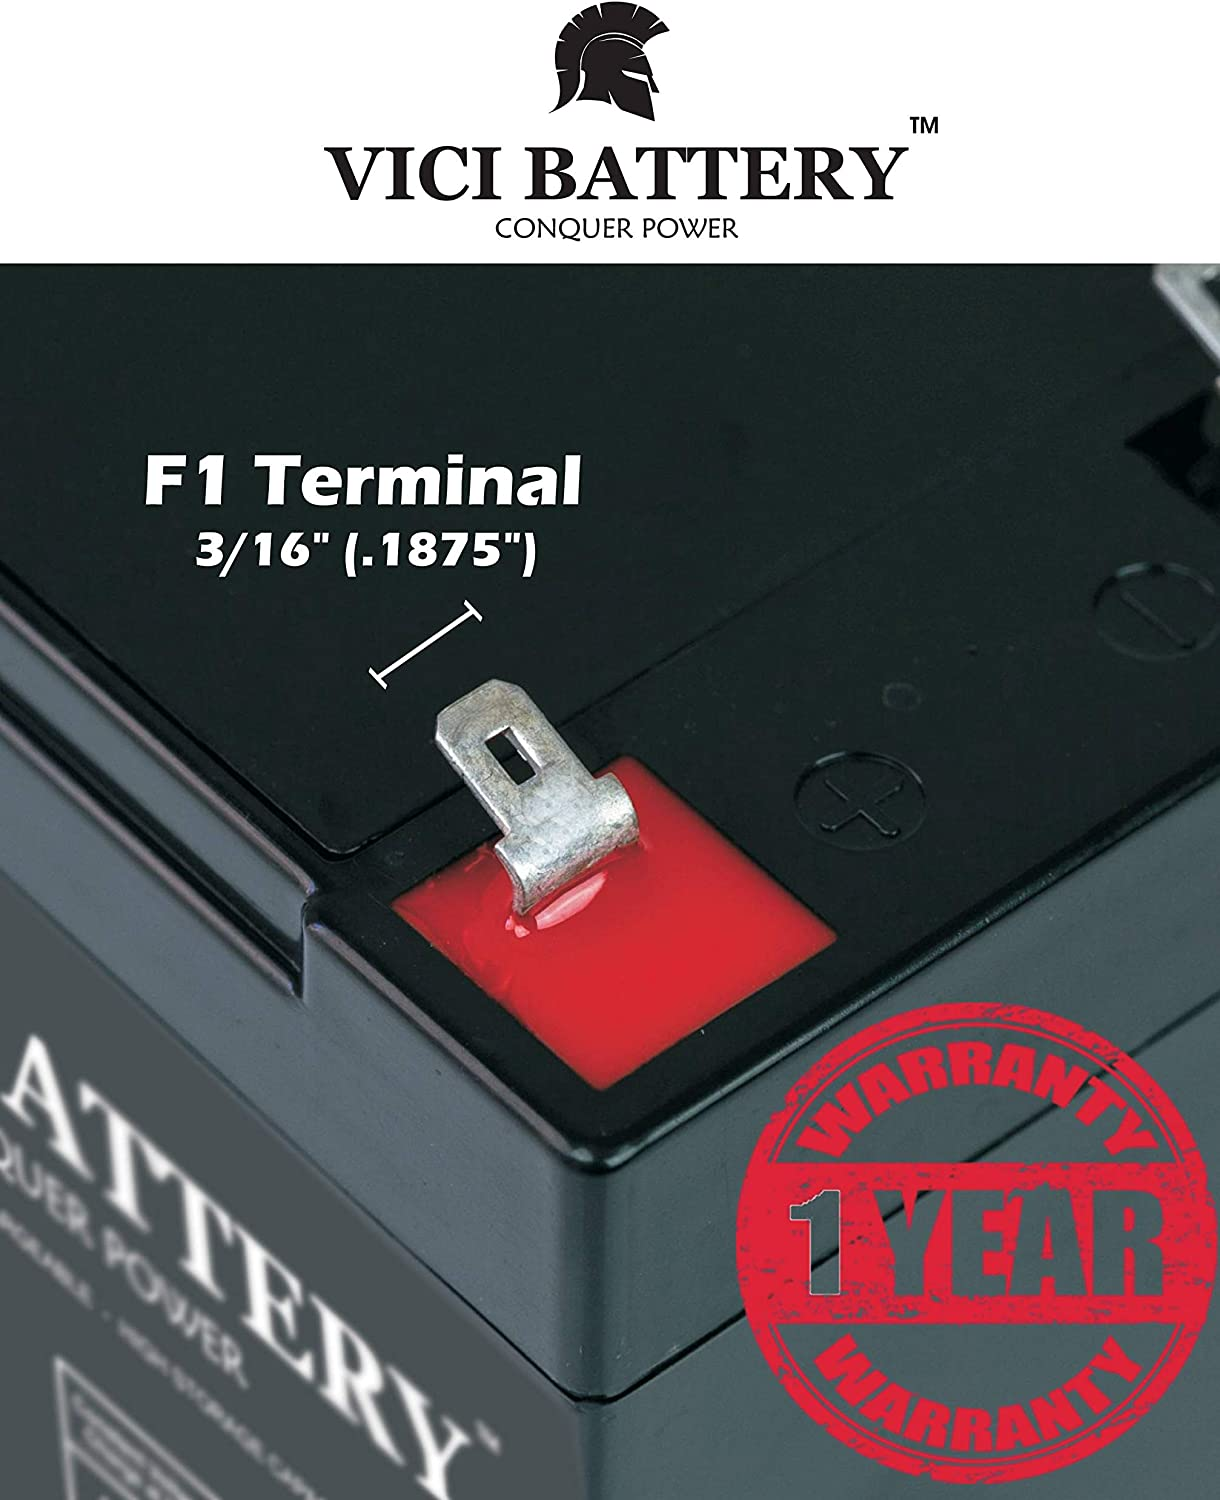 VICI Battery VB5-12 12V 5AH UPS Battery for Power Patrol SLA1055 Brand Product